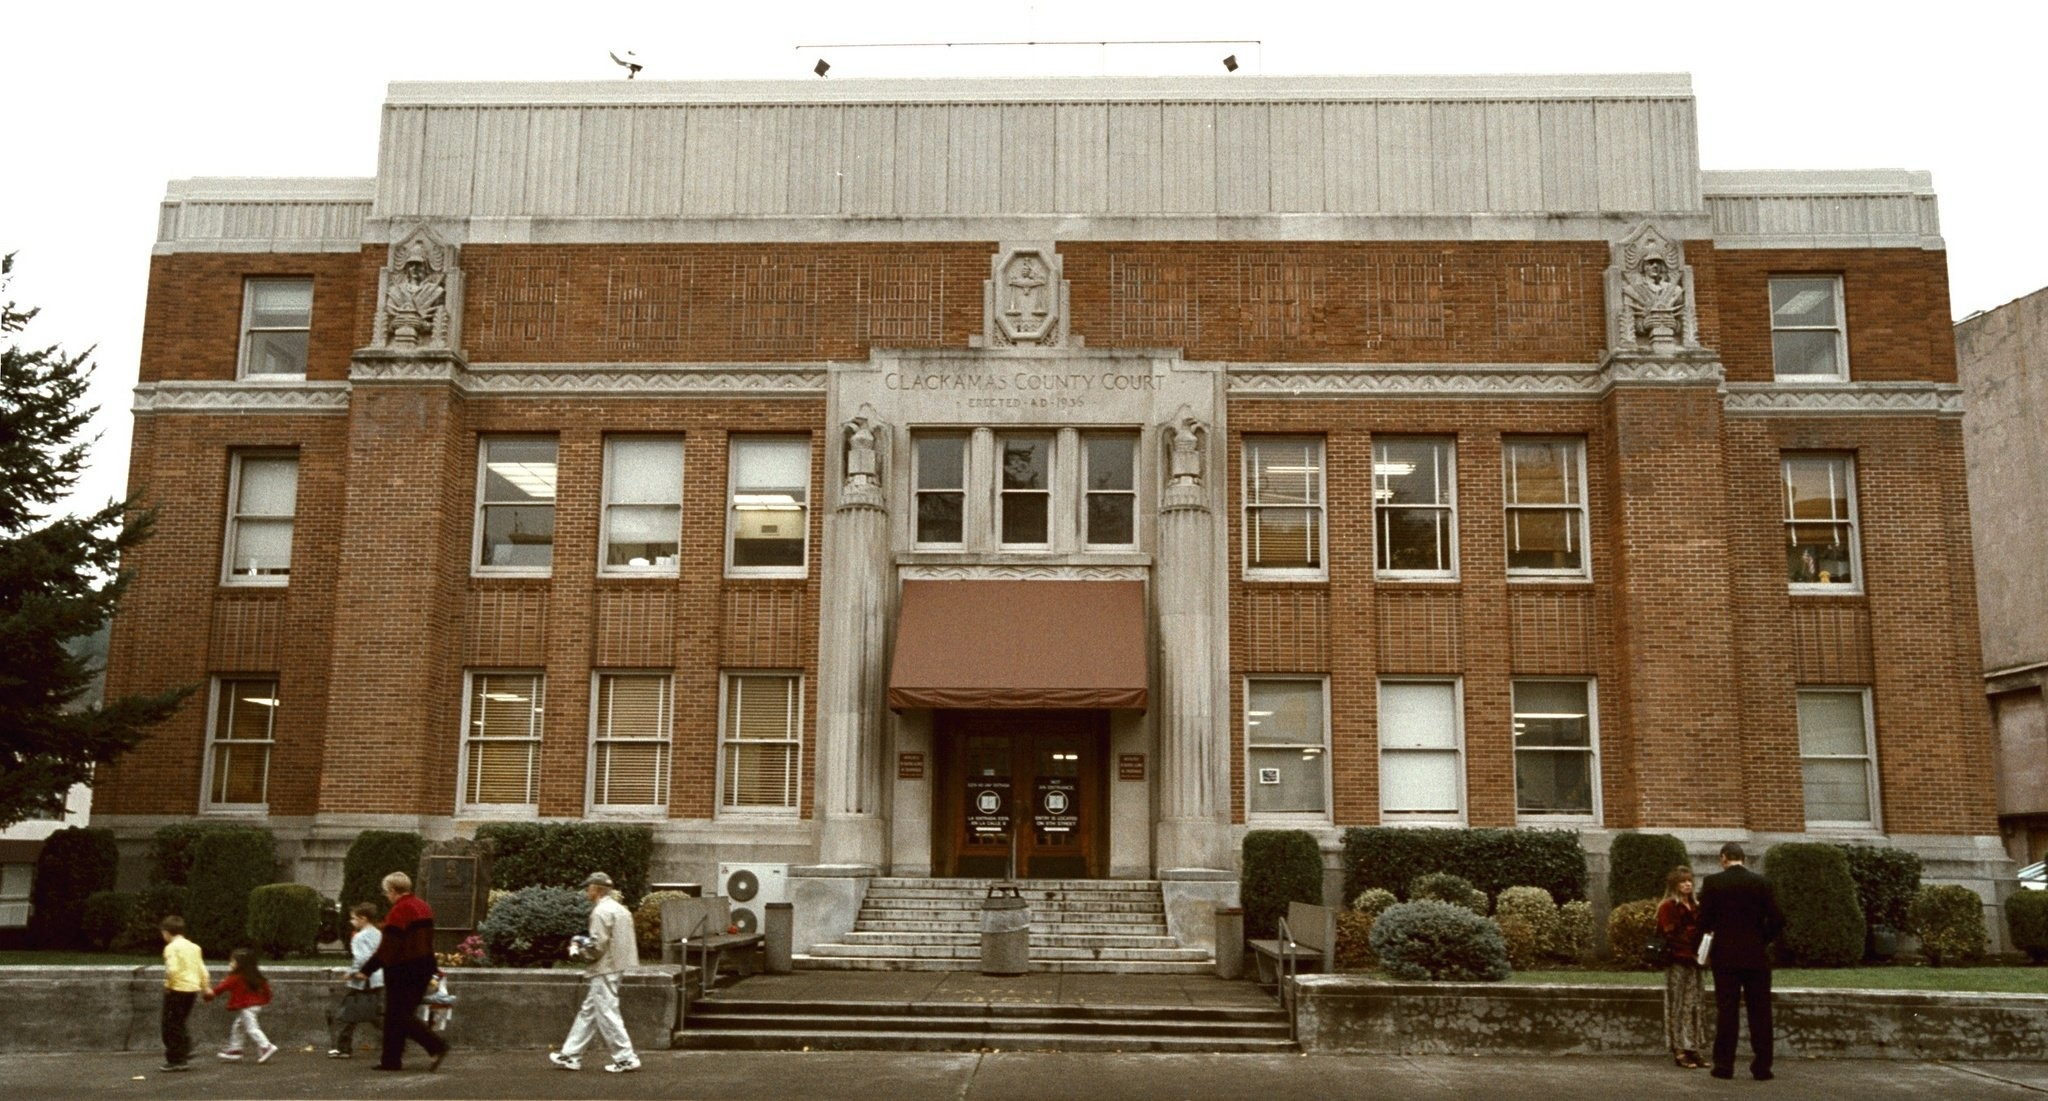 Earthquake Fears Push Plans For New Clackamas County Regarding Clackamas County Courthouse Schedule